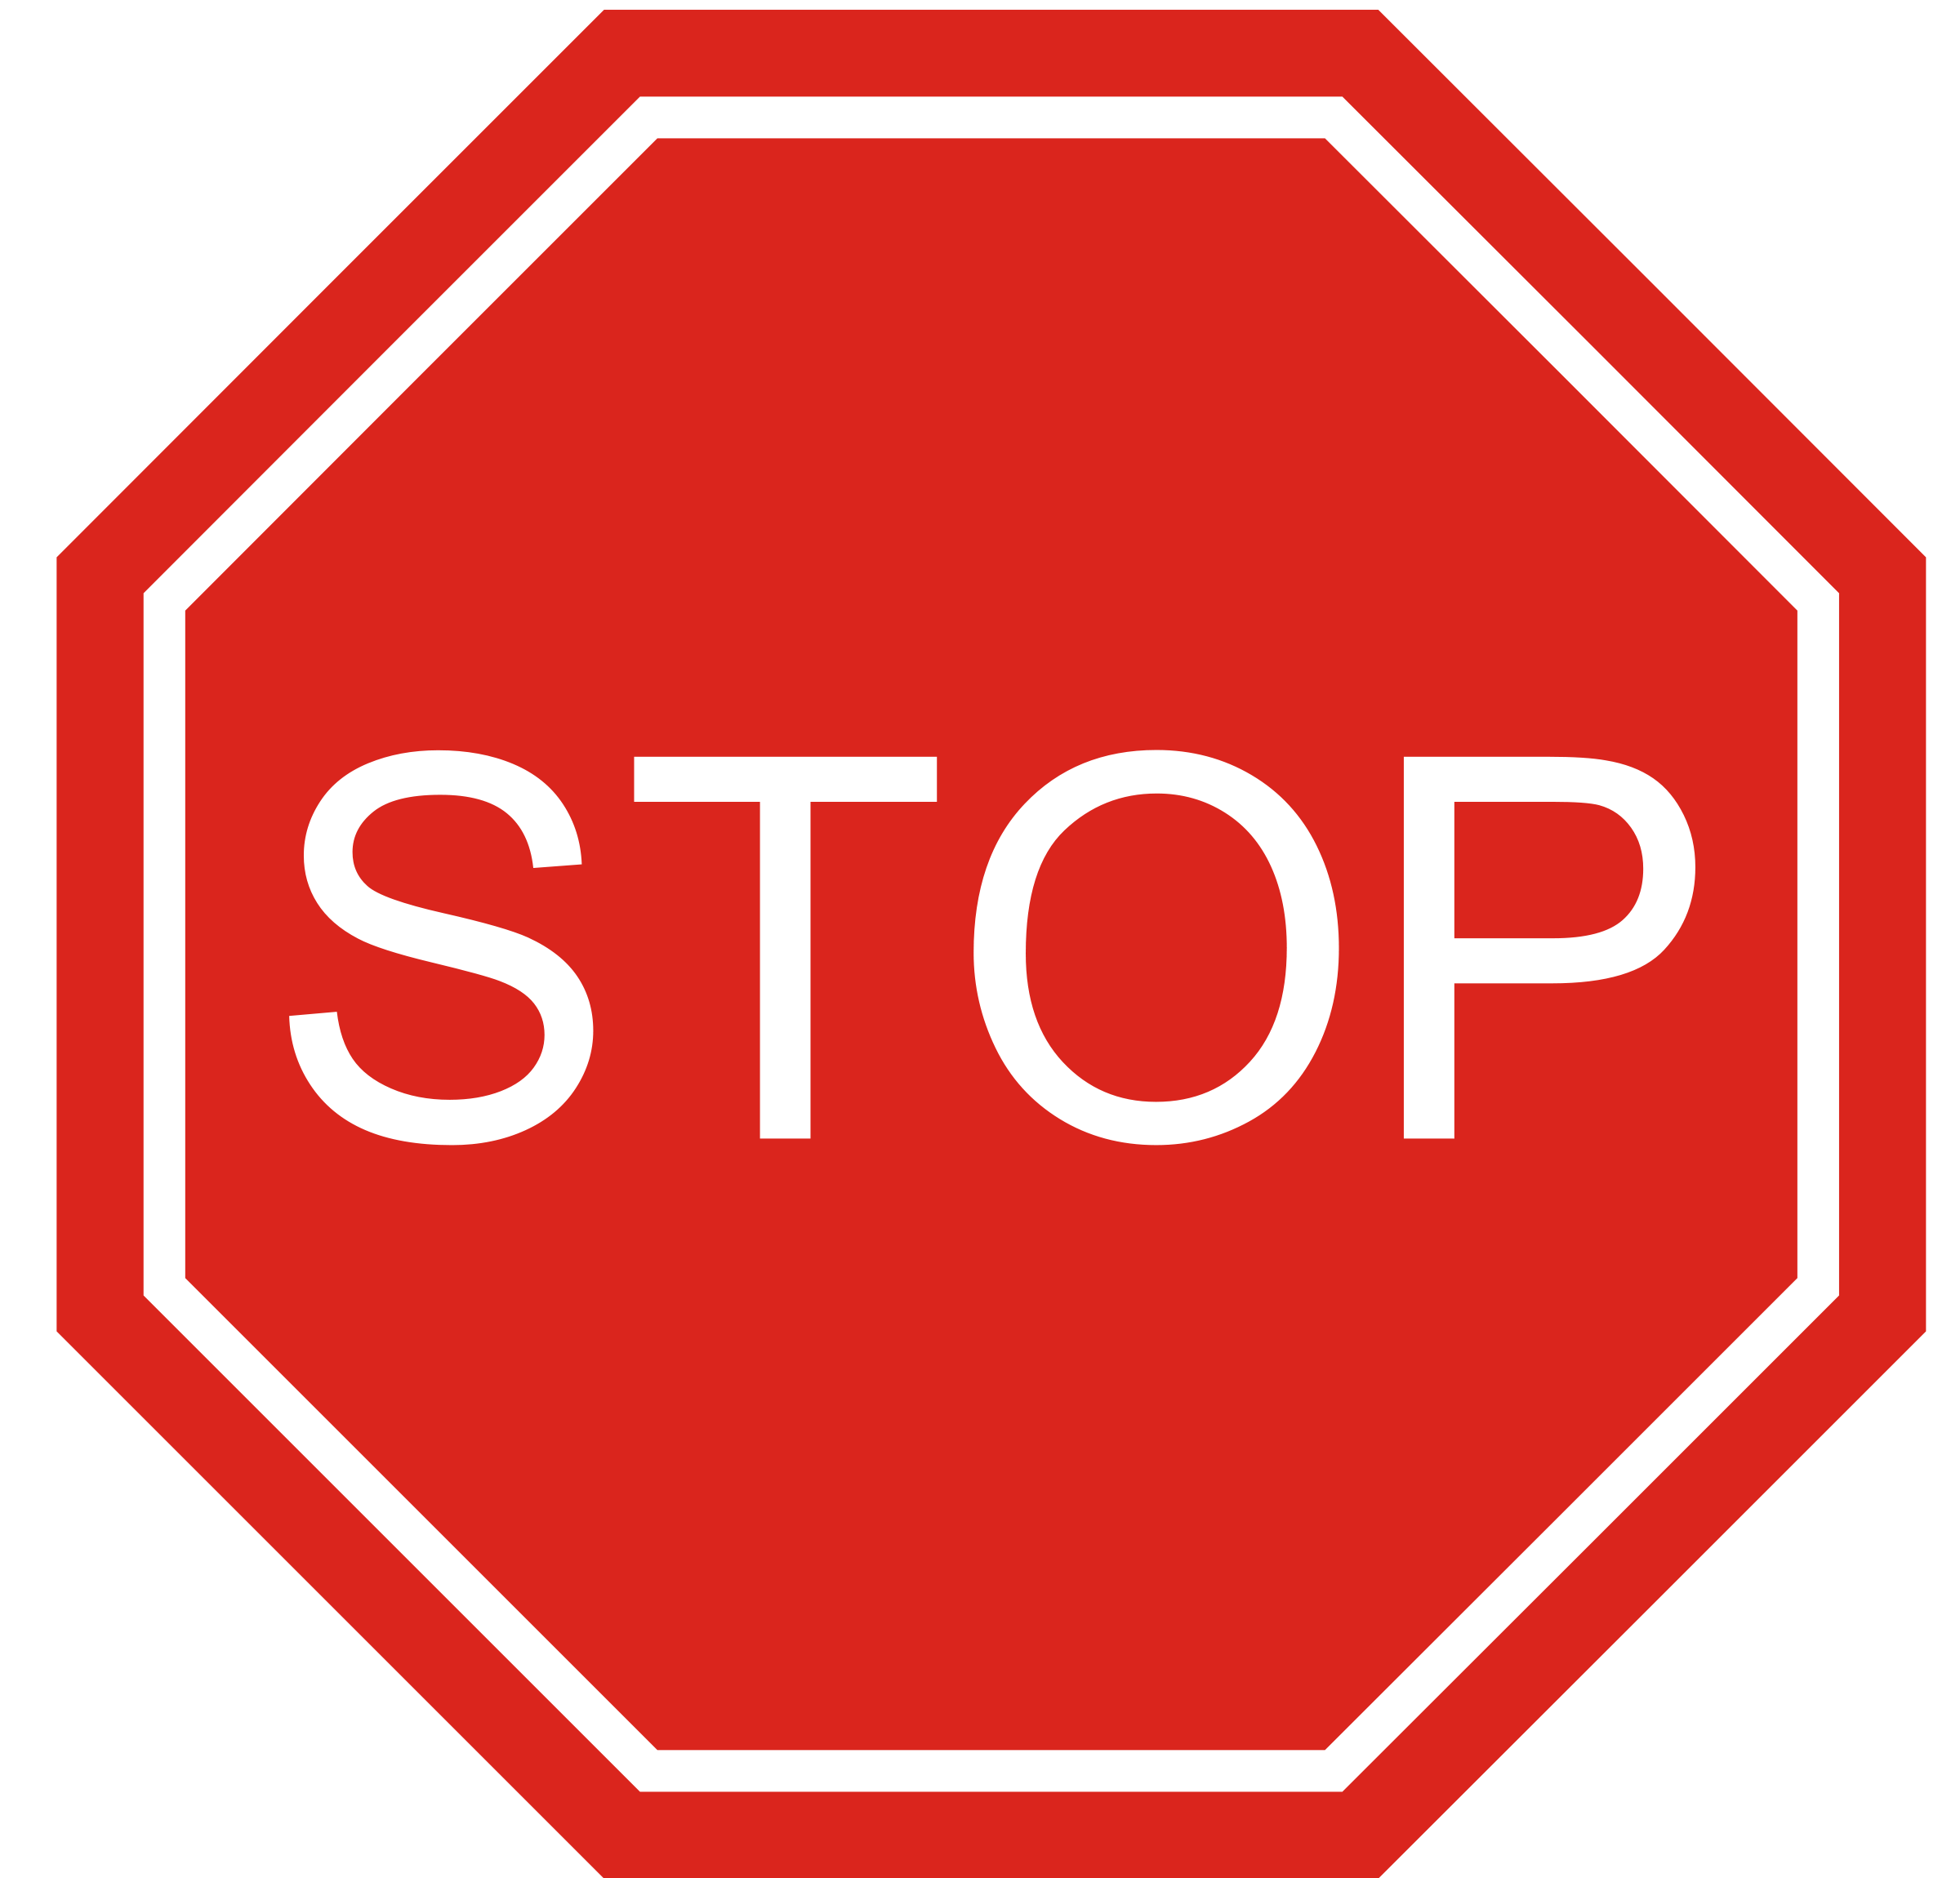 It's just an image of Lucrative Printable Picture of a Stop Sign